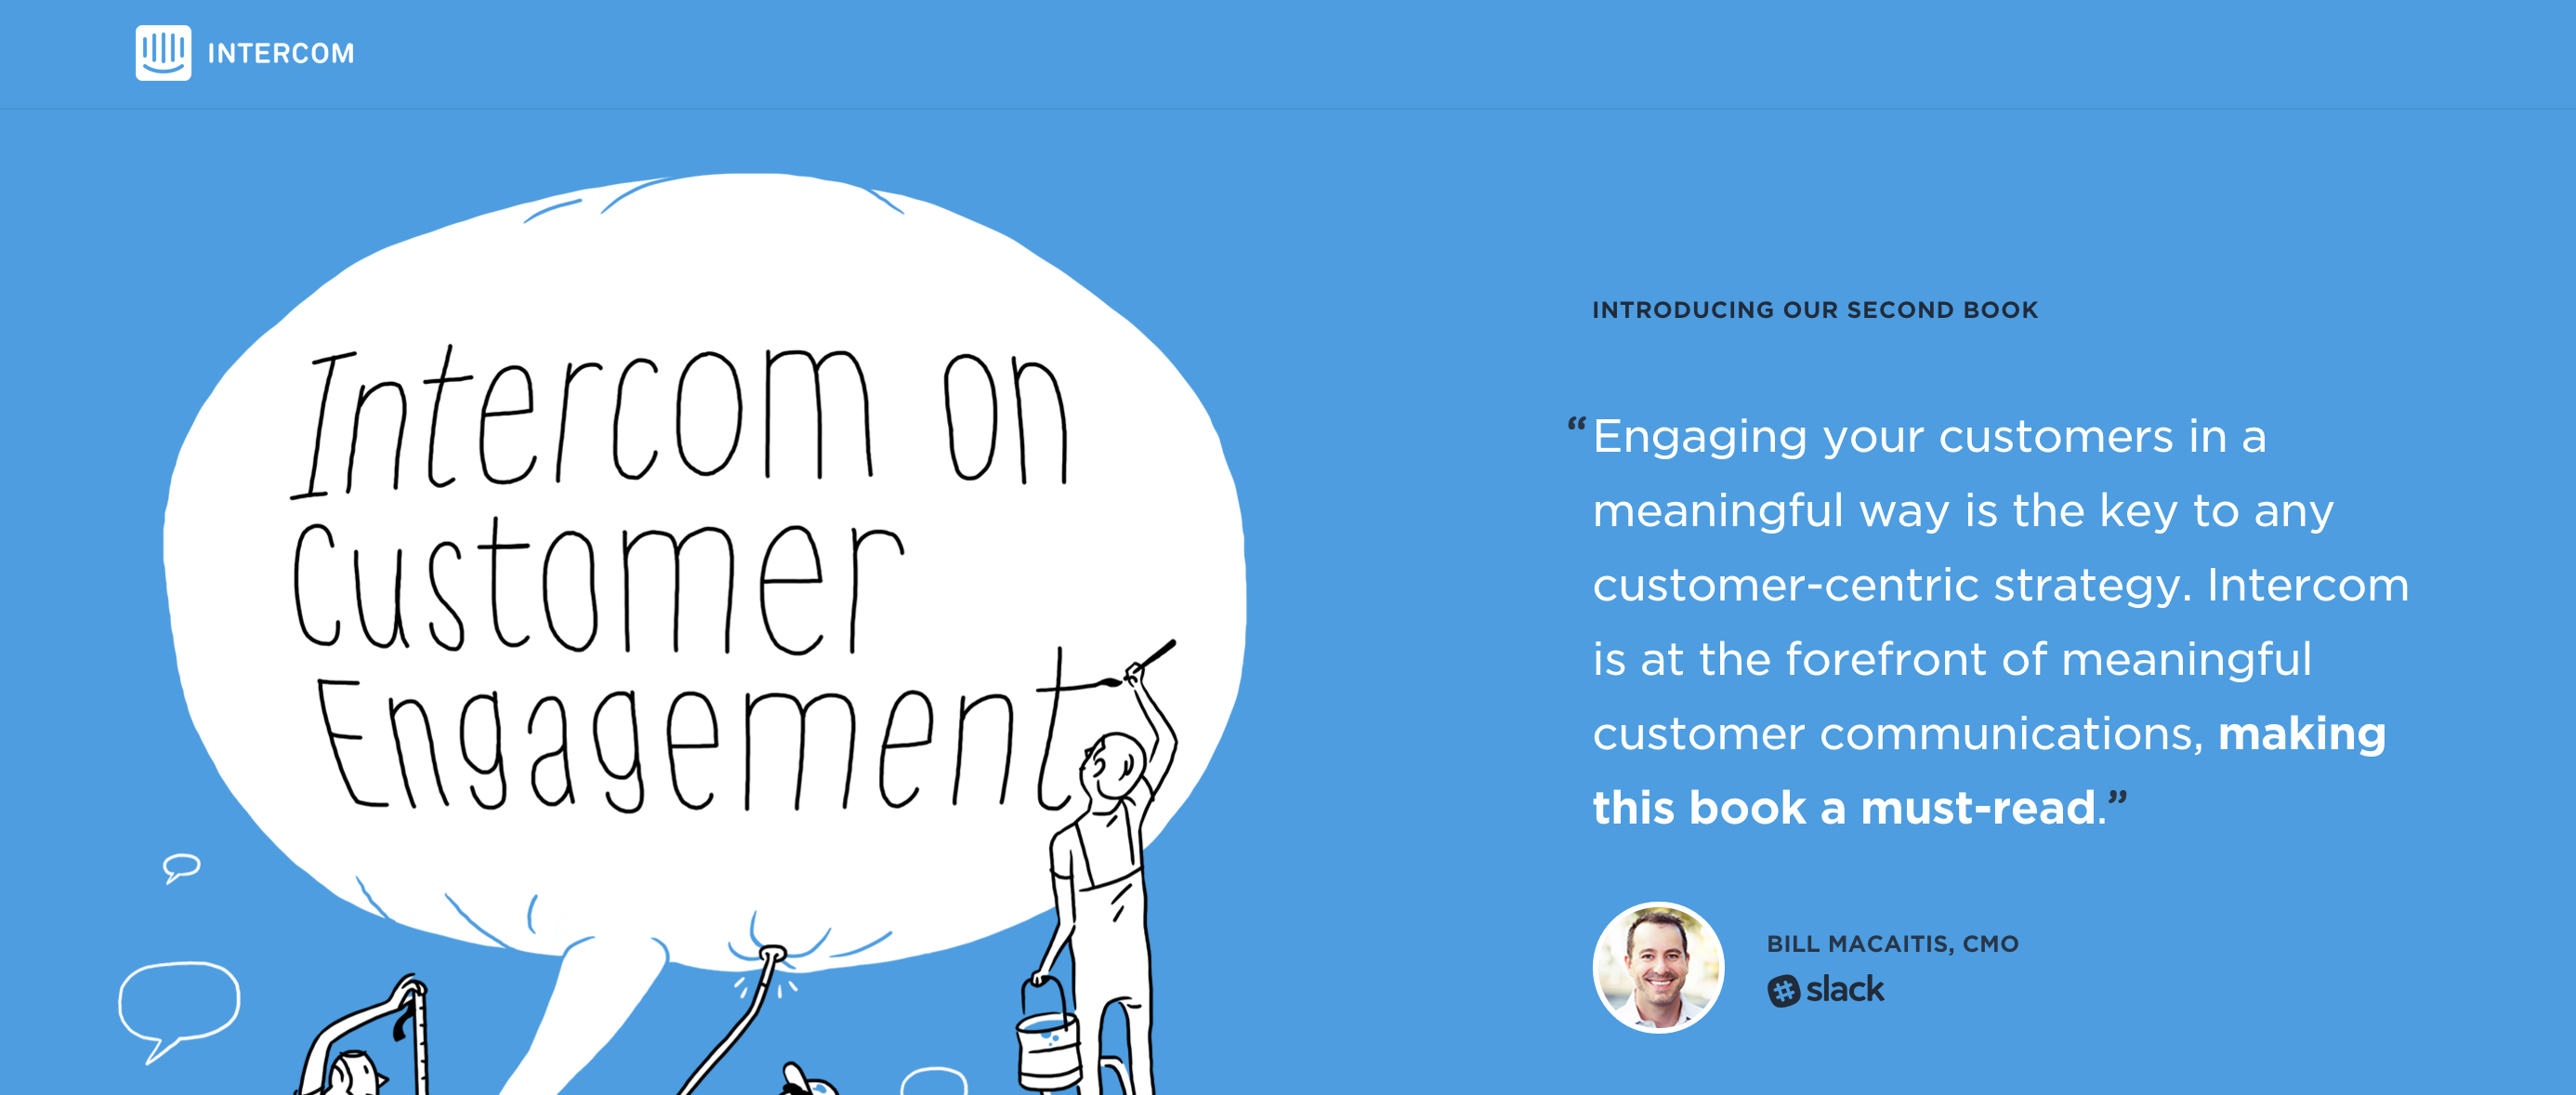 Intercom customer engagement eBook